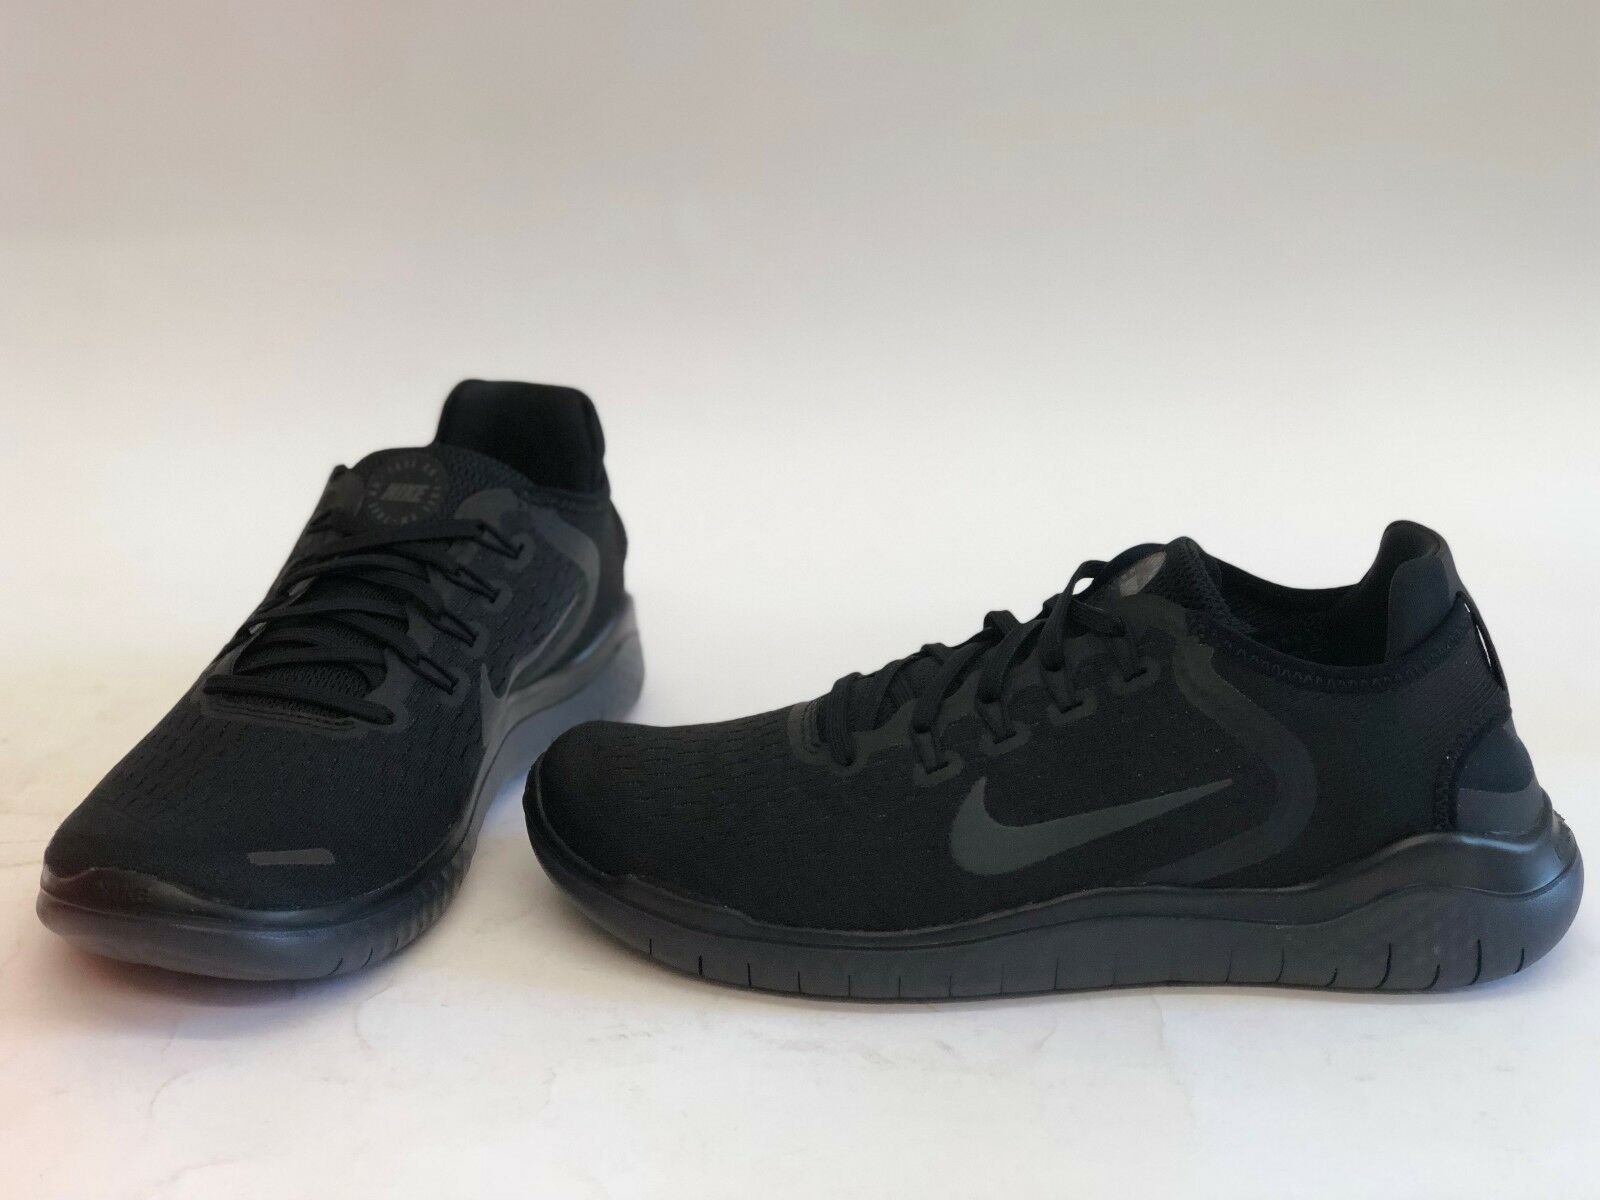 NIB MENS SIZE 8.5 NIKE FREE 2018 RUNNING SNEAKERS BLACK 942836-002